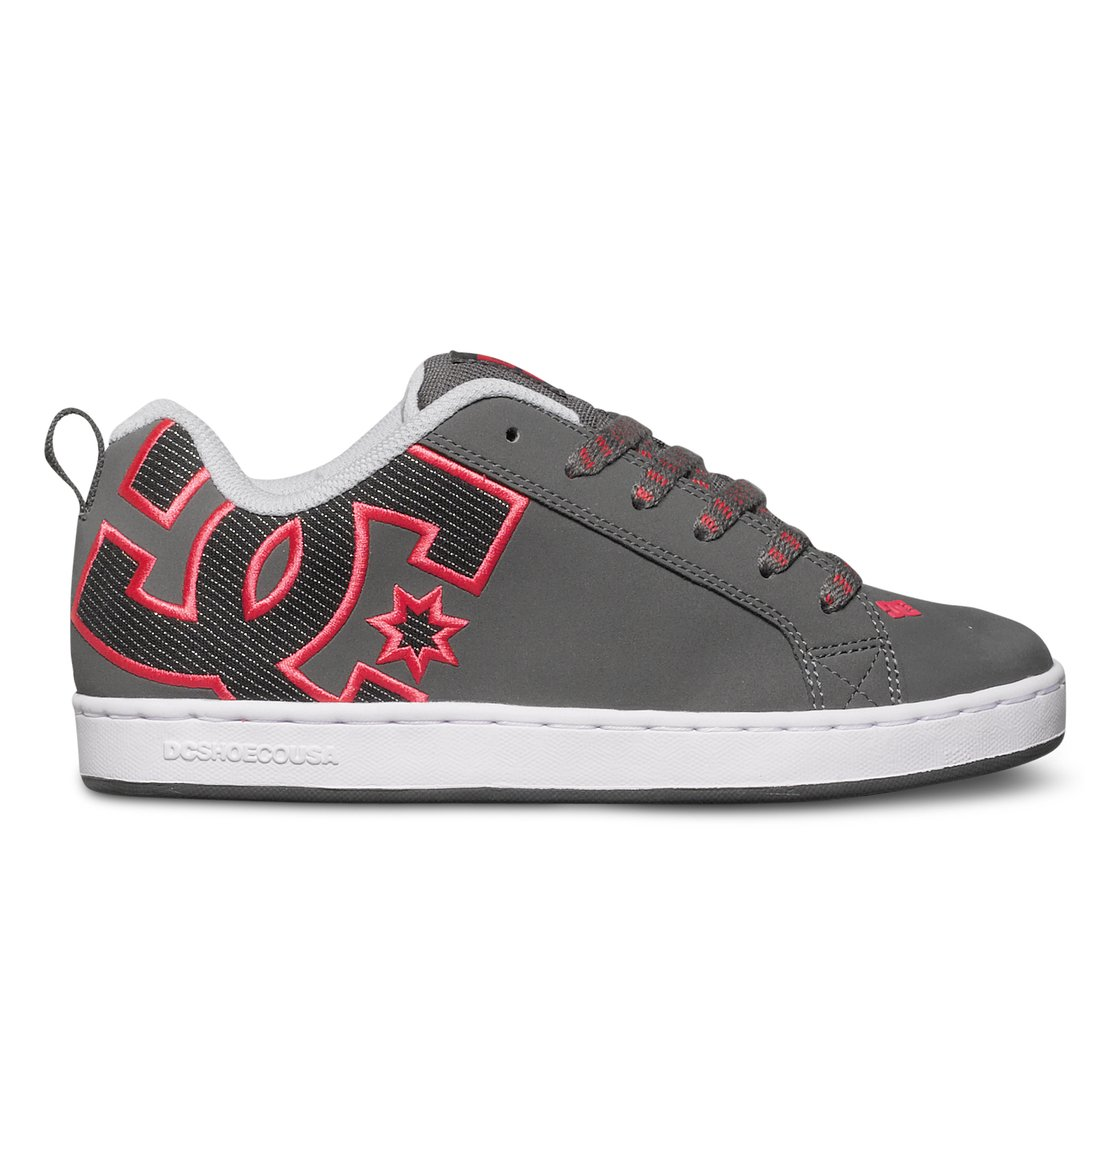 Creative Shoes For Women From DC Shoes Features Include Full Bootie Construction For Secure Fit, Internal ToeHat Reinforcement, IMEVA UniLite Midsole For Lightweight Comfort And Support, OrthoLite Footbed Provides Cushioning And Rubber Outsole